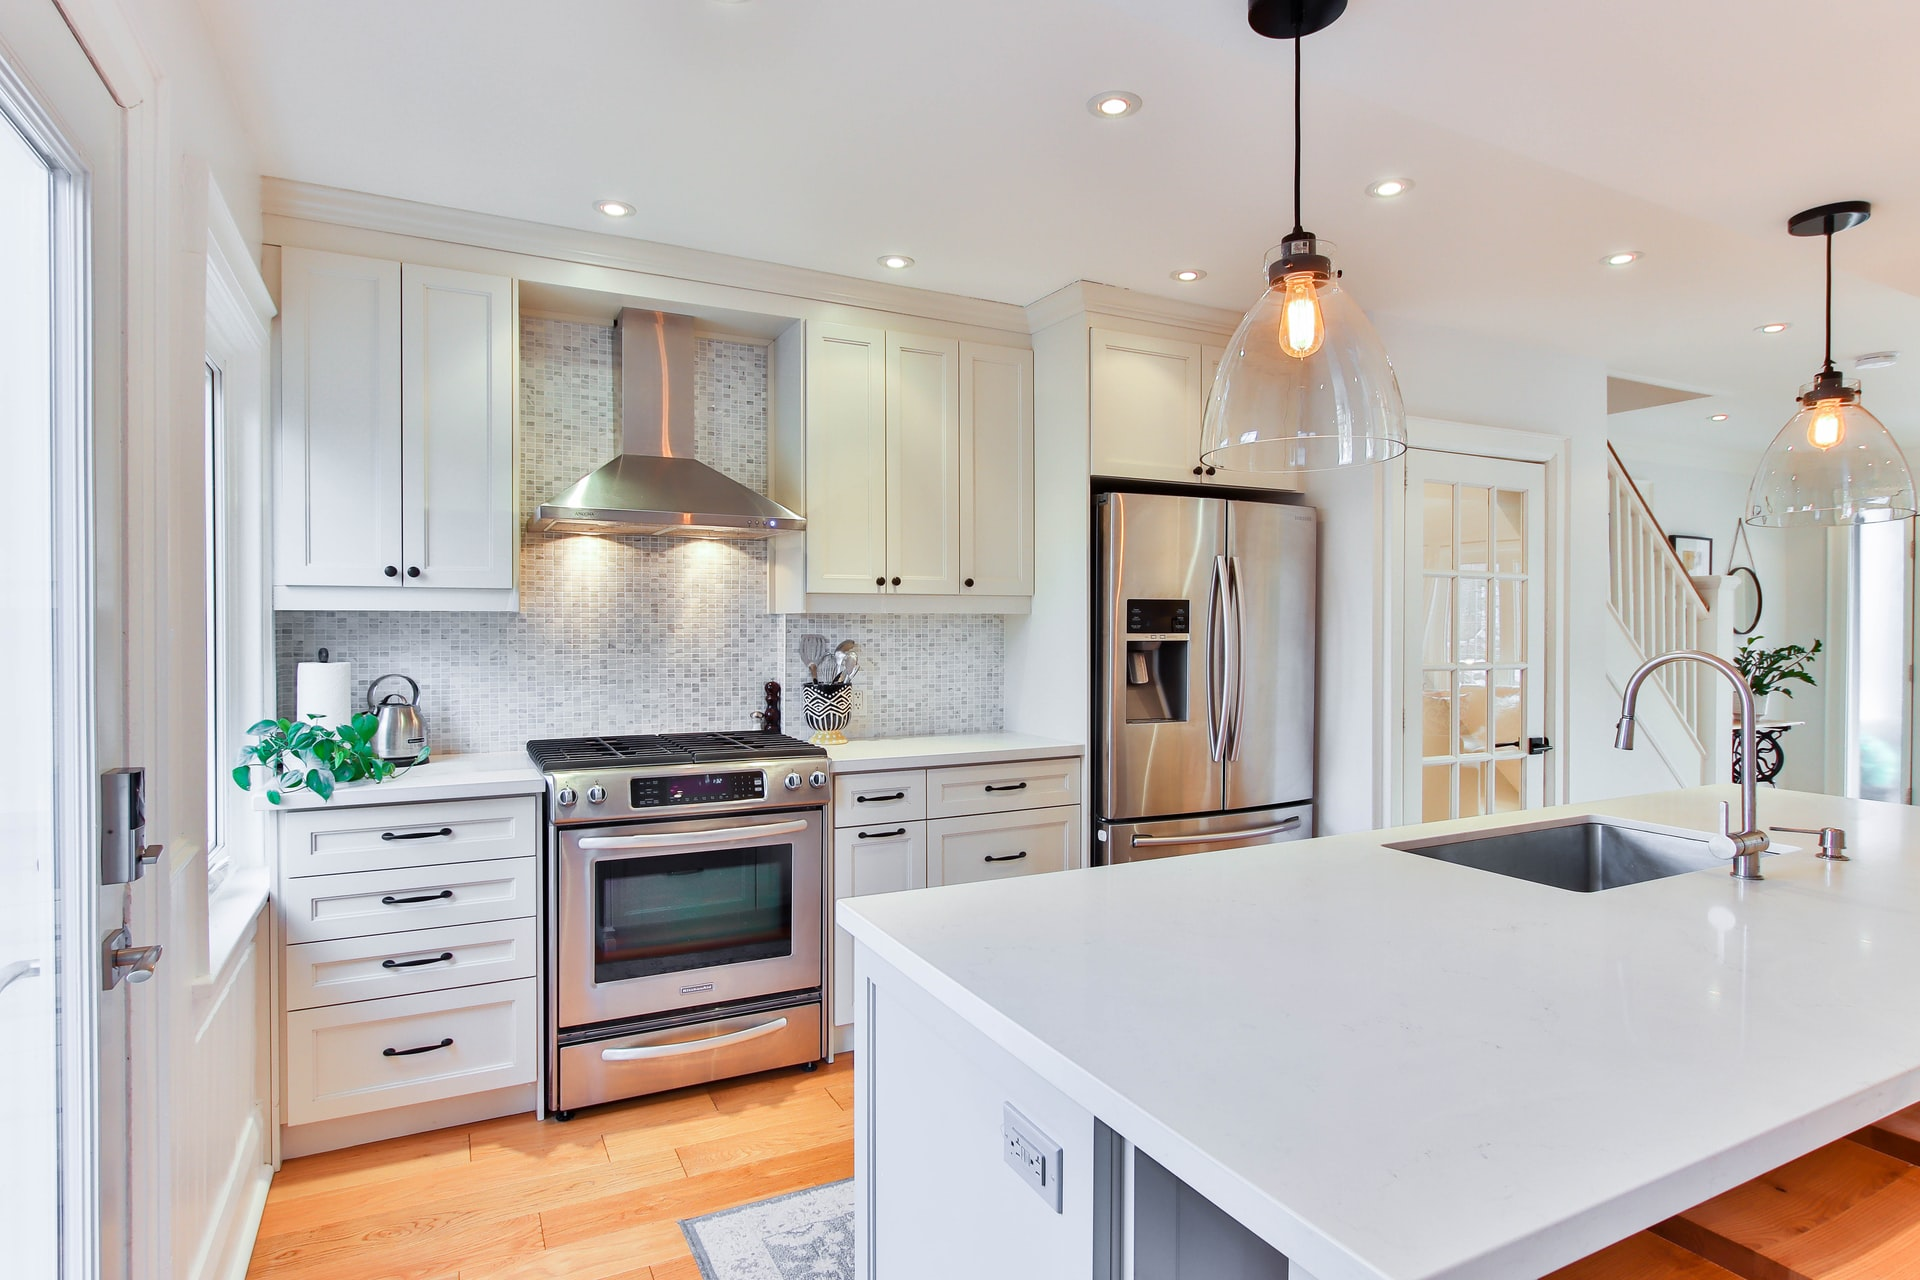 Kitchen cabinets in Lebanon, PA from Home Improvement Outlet